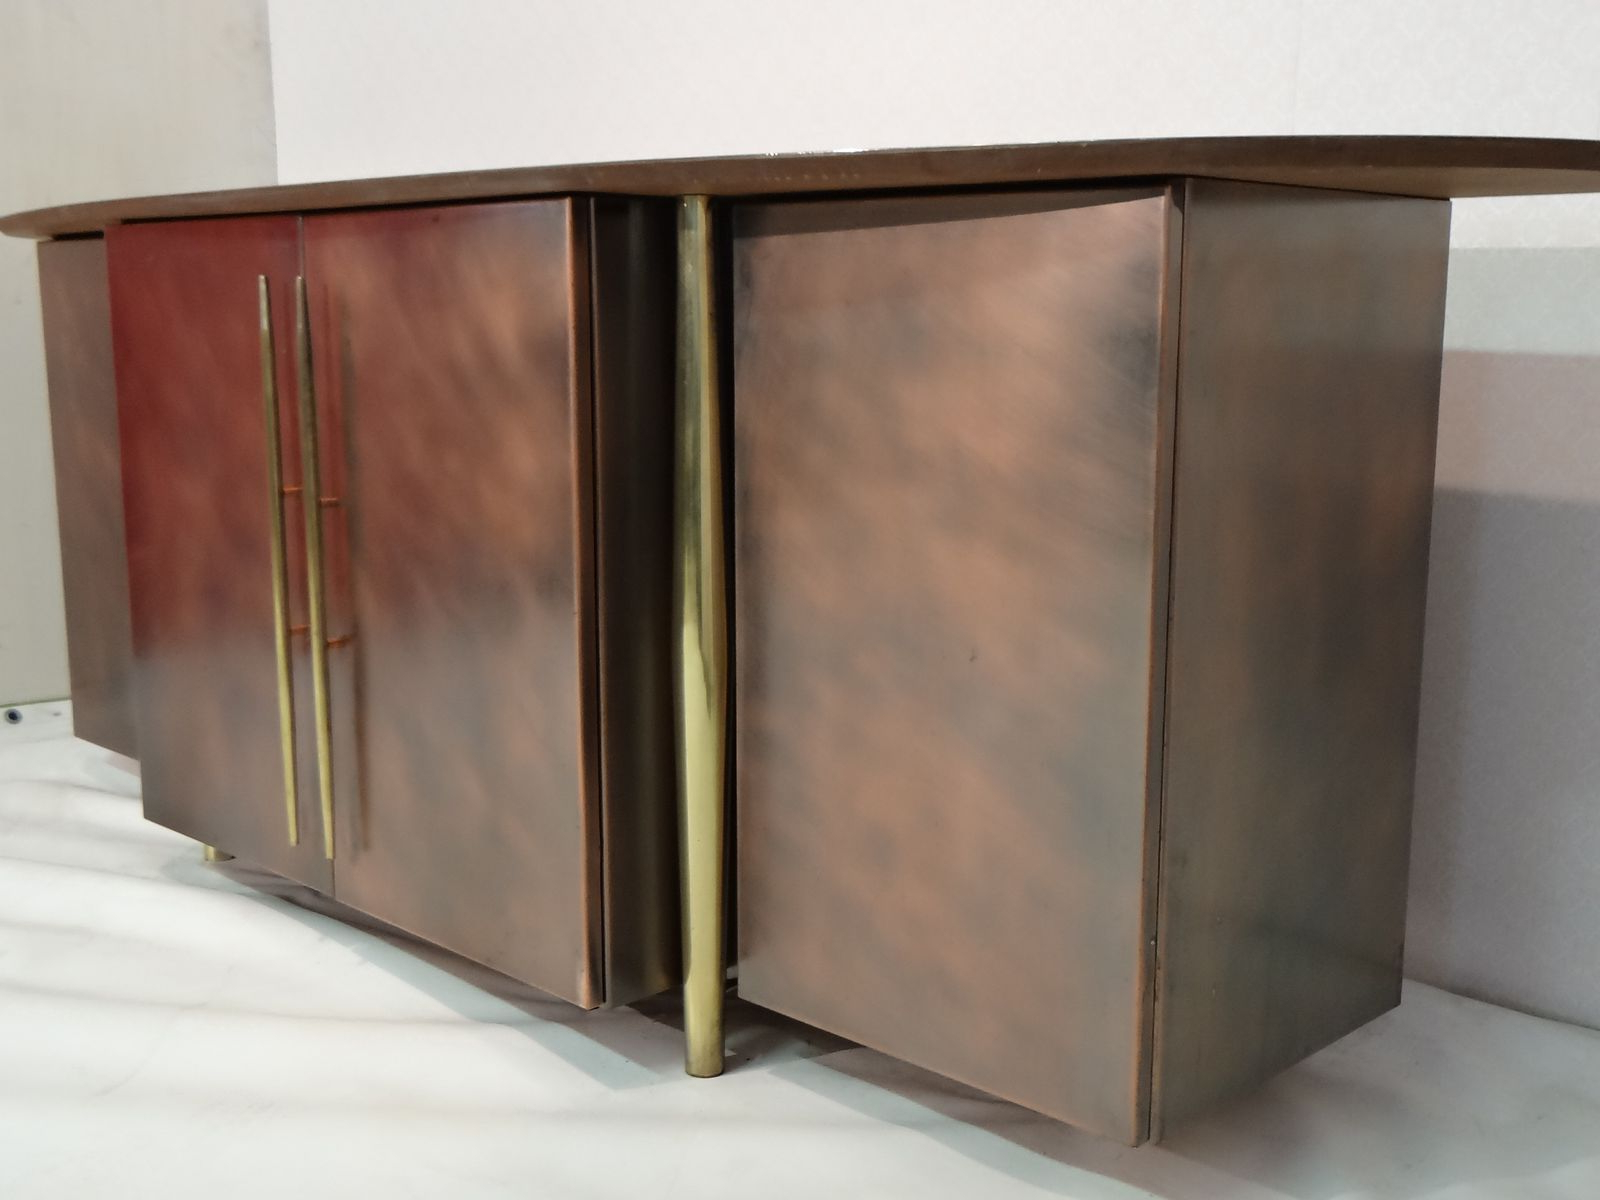 Popular Vintage Brass Sideboard From Belgo Chrom For Sale At Pamono Intended For Aged Brass Sideboards (View 5 of 20)